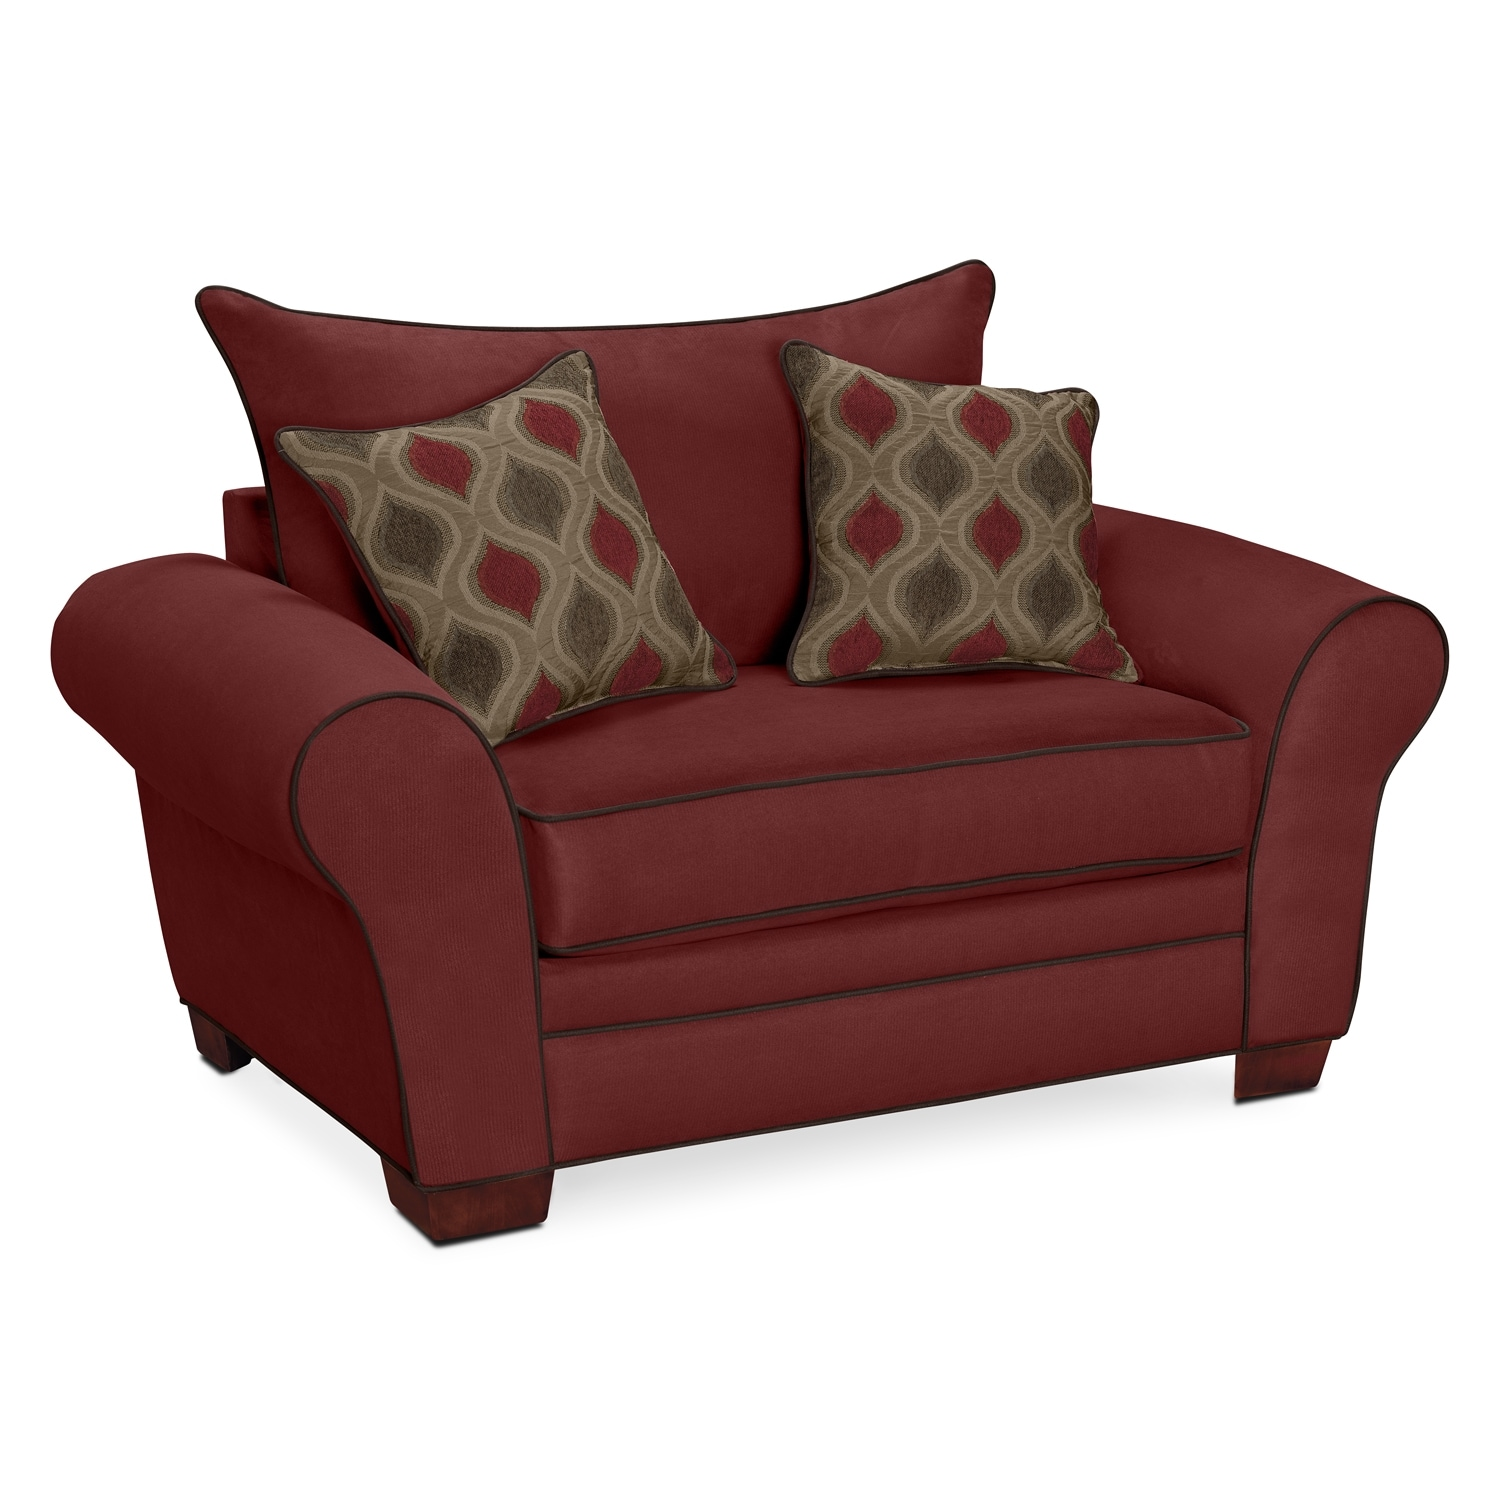 Living Room Furniture - Strauss Wine Chair and a Half